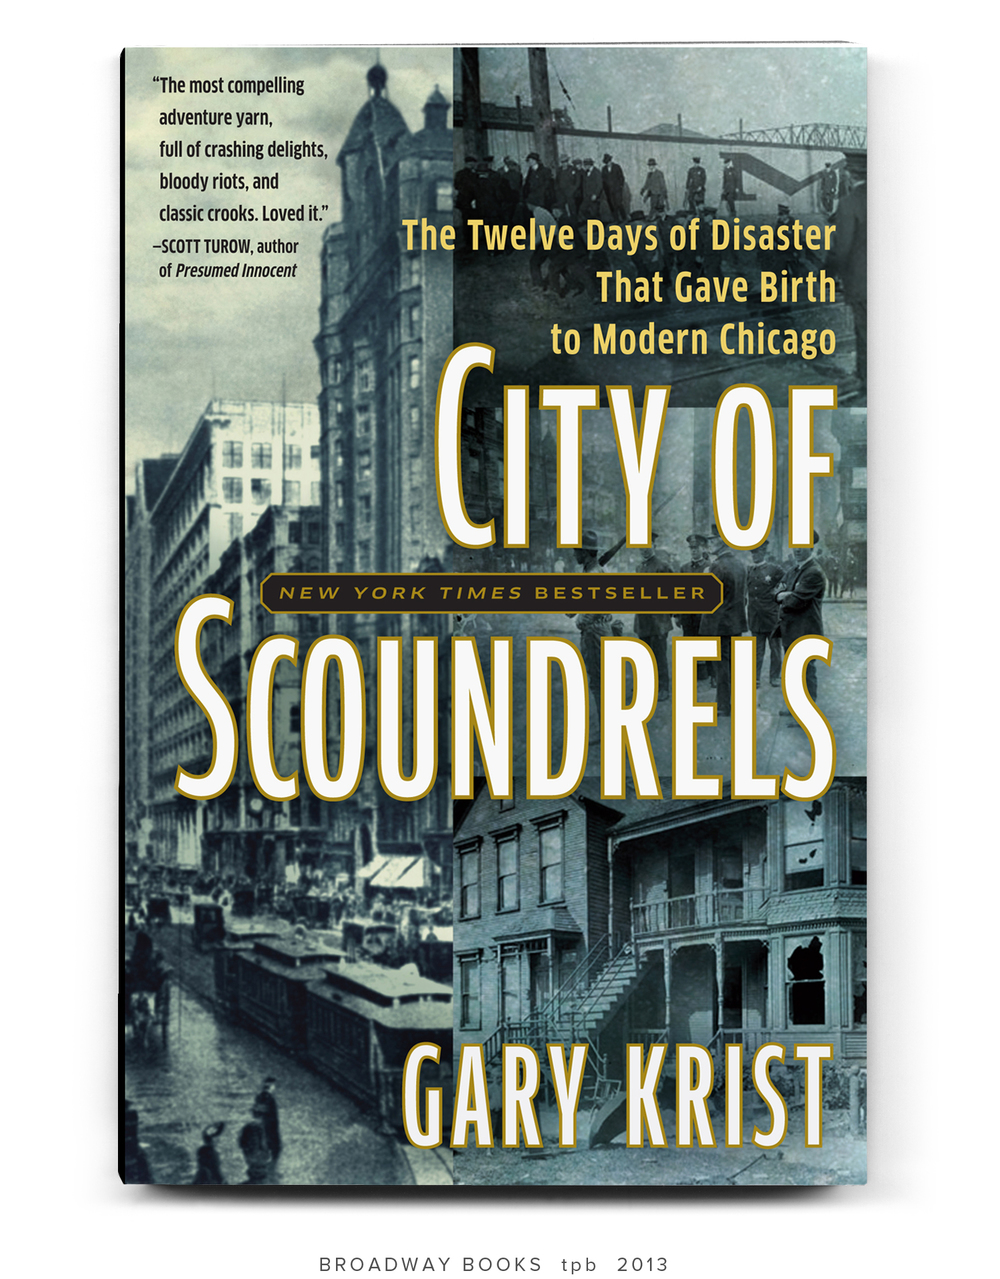 CITY-OF-SCOUNDRELS-tpb-ss6.jpg